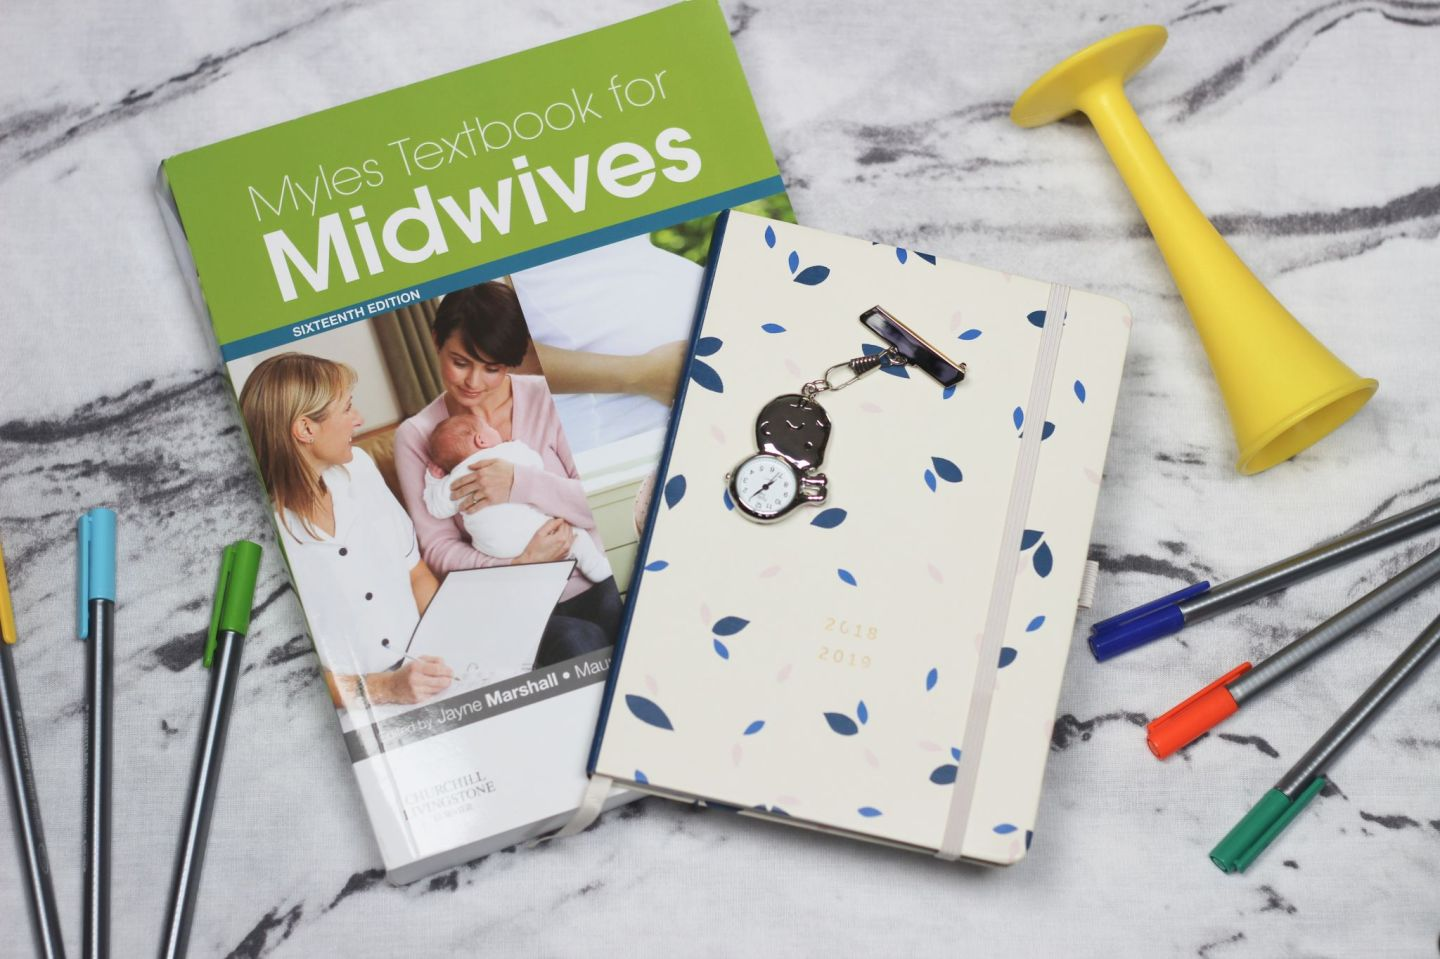 Student Midwife Textbook, Diary, Fobwatch, Pinard and Pens